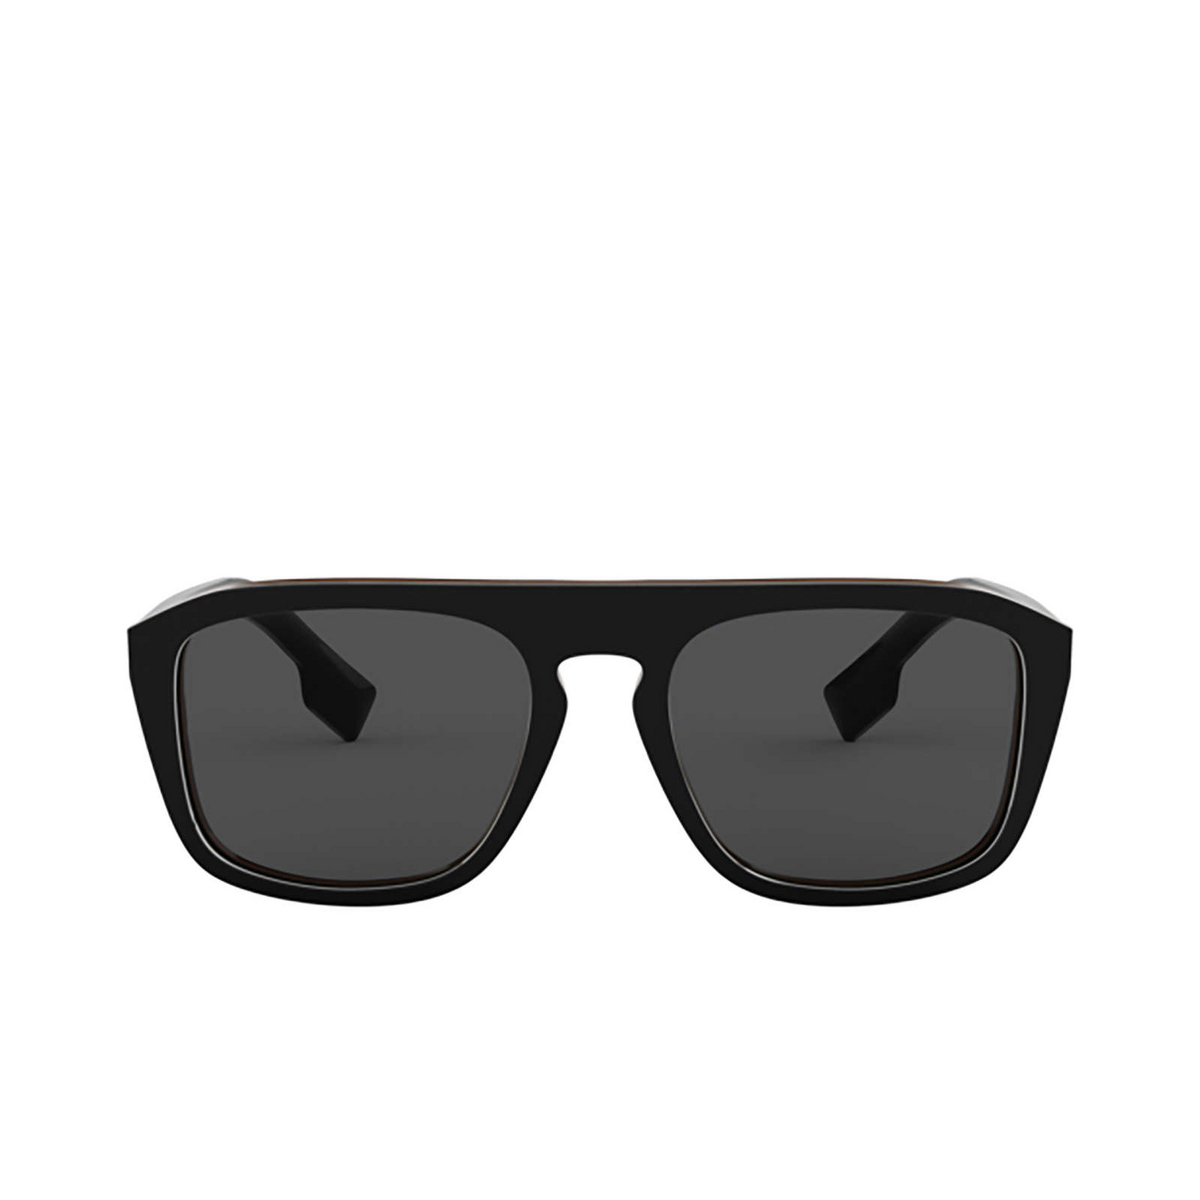 Burberry® Square Sunglasses: BE4286 color Check Multilayer Black 379887 - front view.